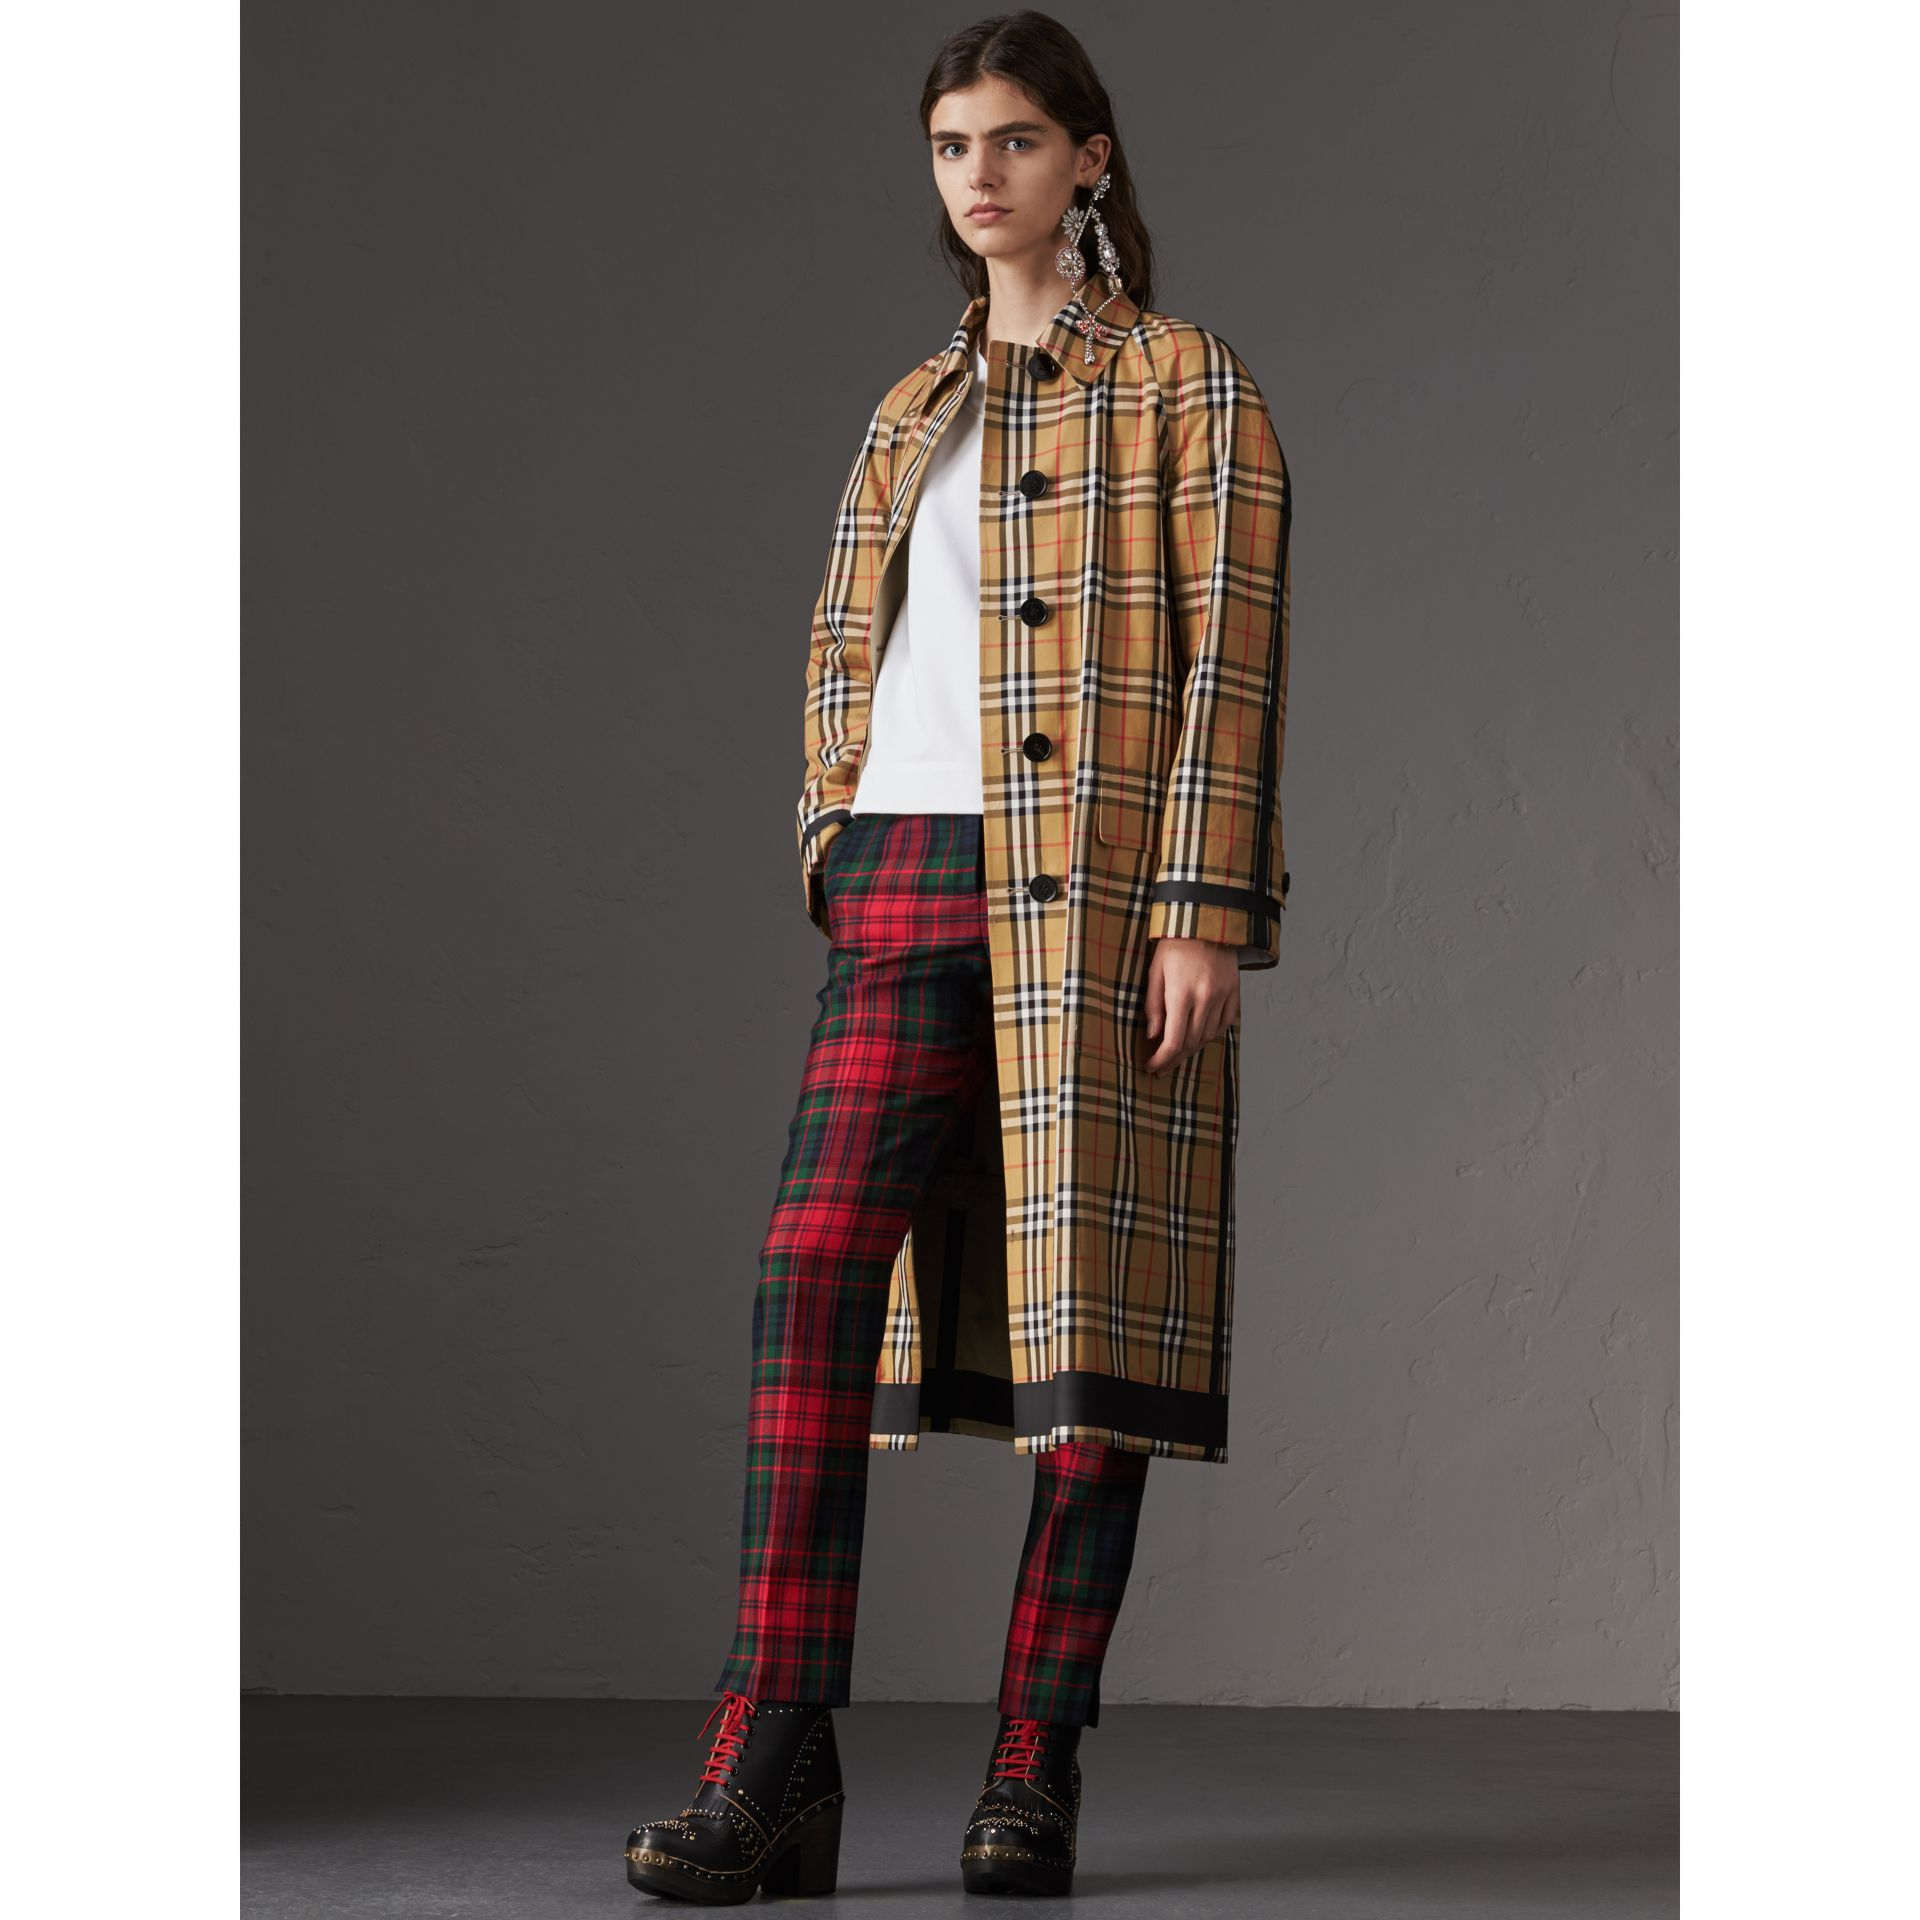 Cappotto car coat double face in gabardine con motivo Vintage check (Giallo Antico) - Donna | Burberry - immagine della galleria 1